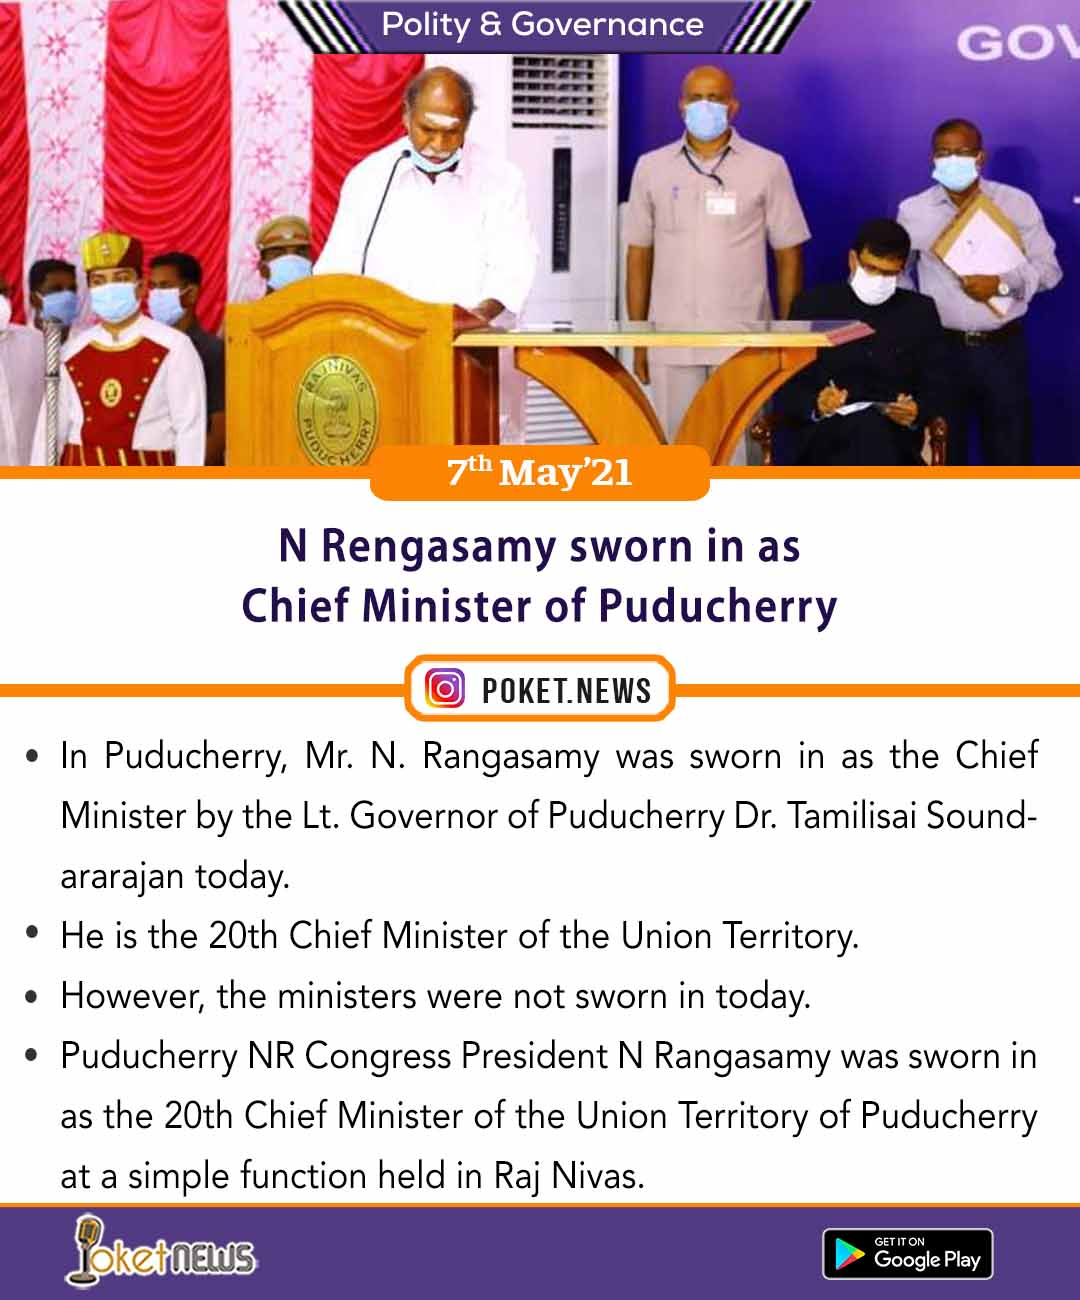 N Rengasamy sworn in as Chief Minister of Puducherry